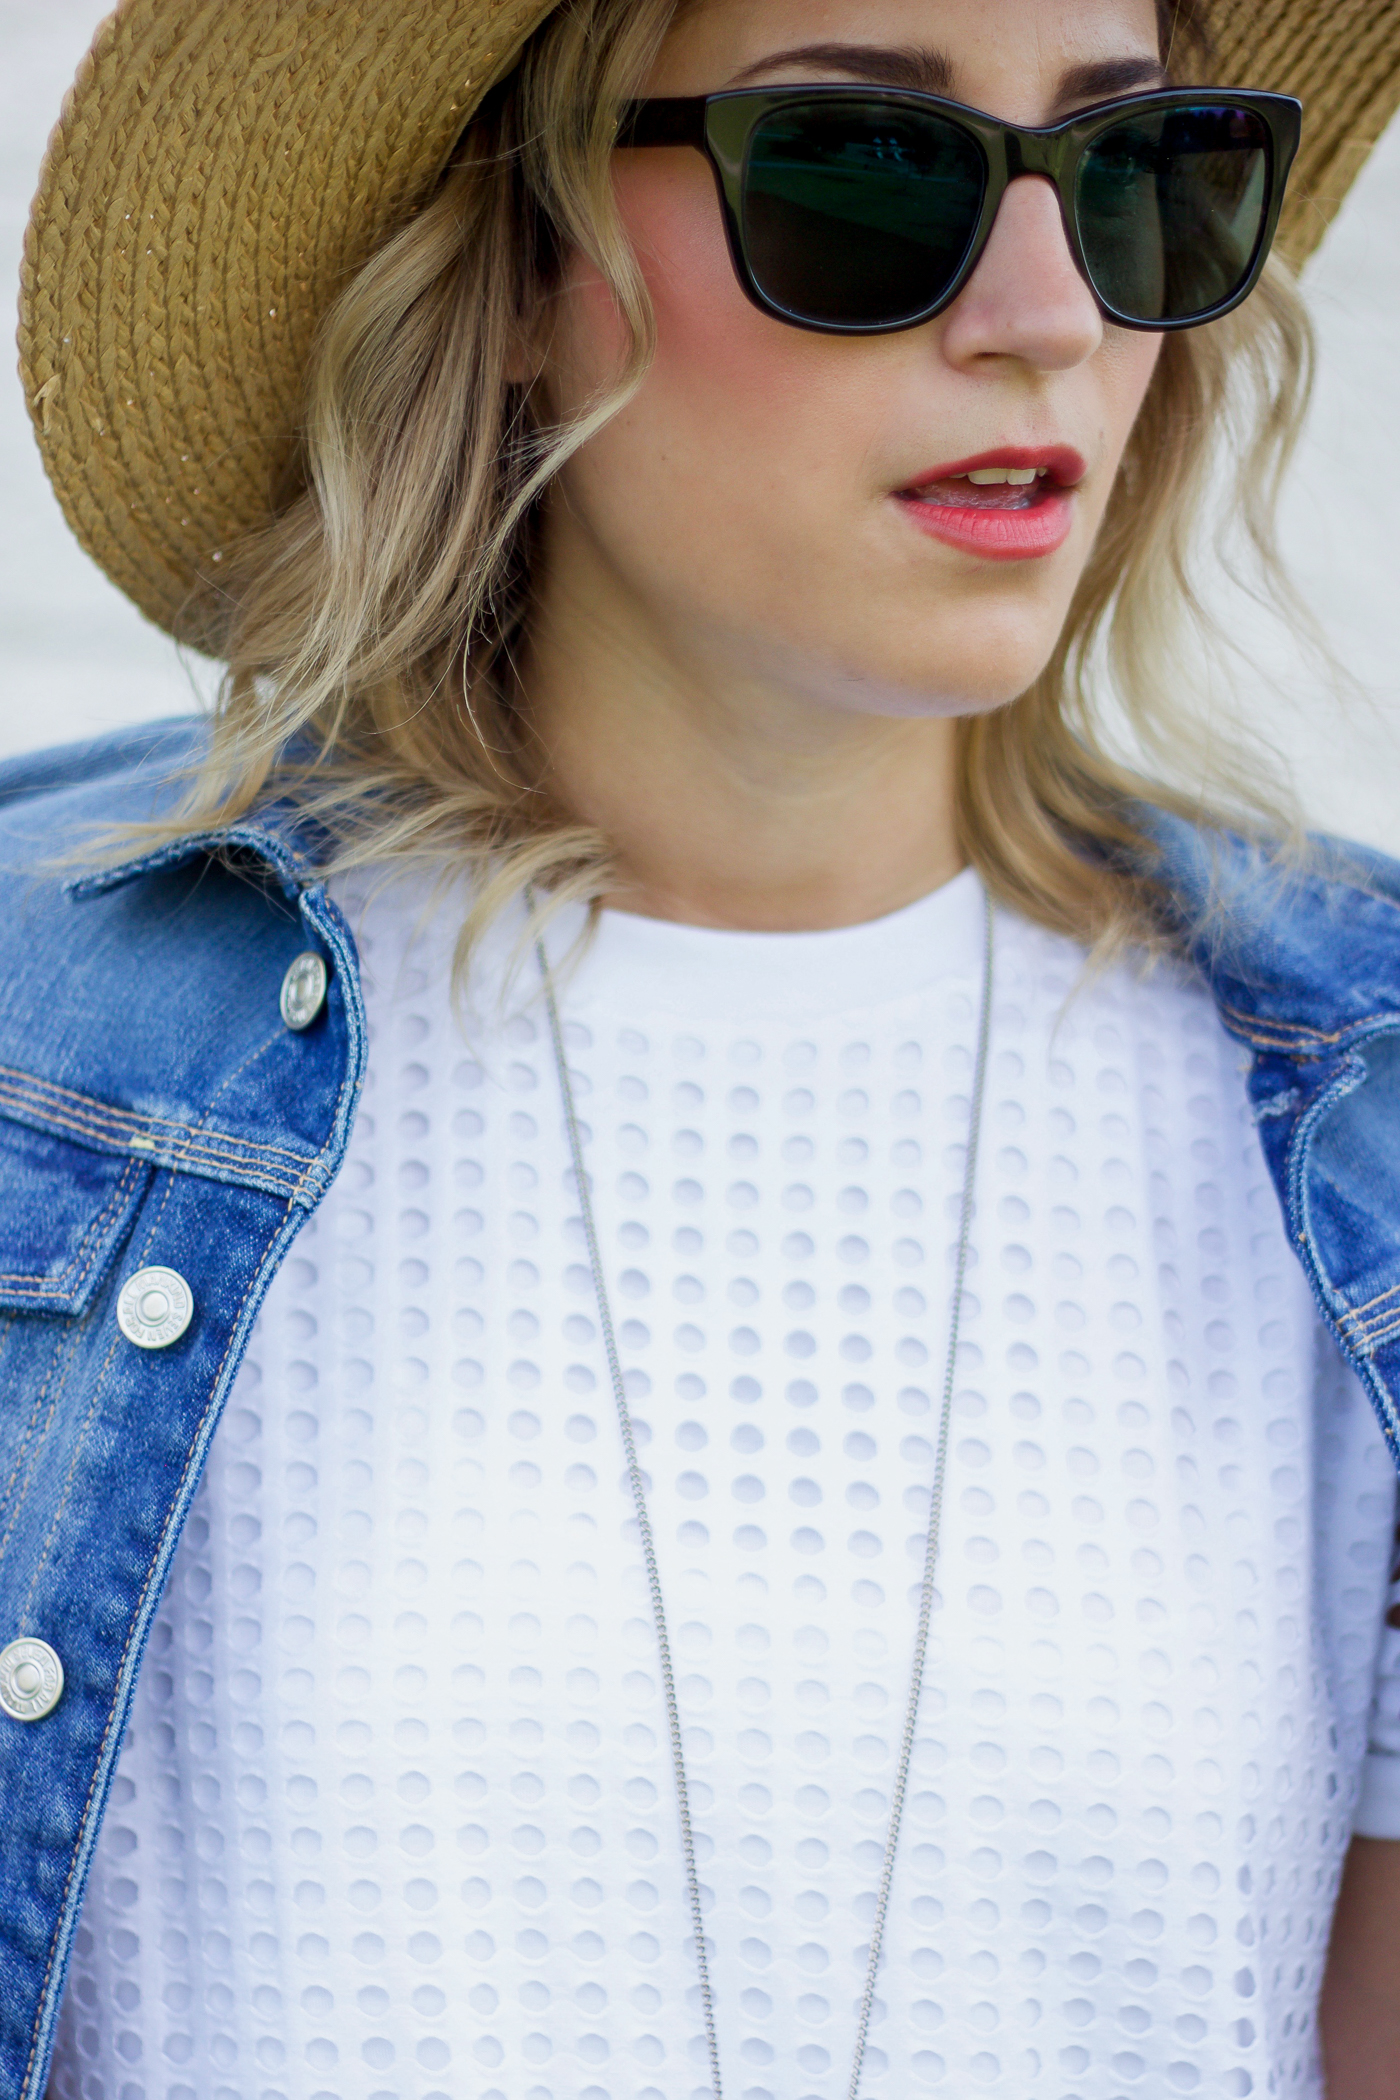 Summer outfit and accessories, as seen on Canadian lifestyle and fashion blogger, Jackie Goldhar of Something About That